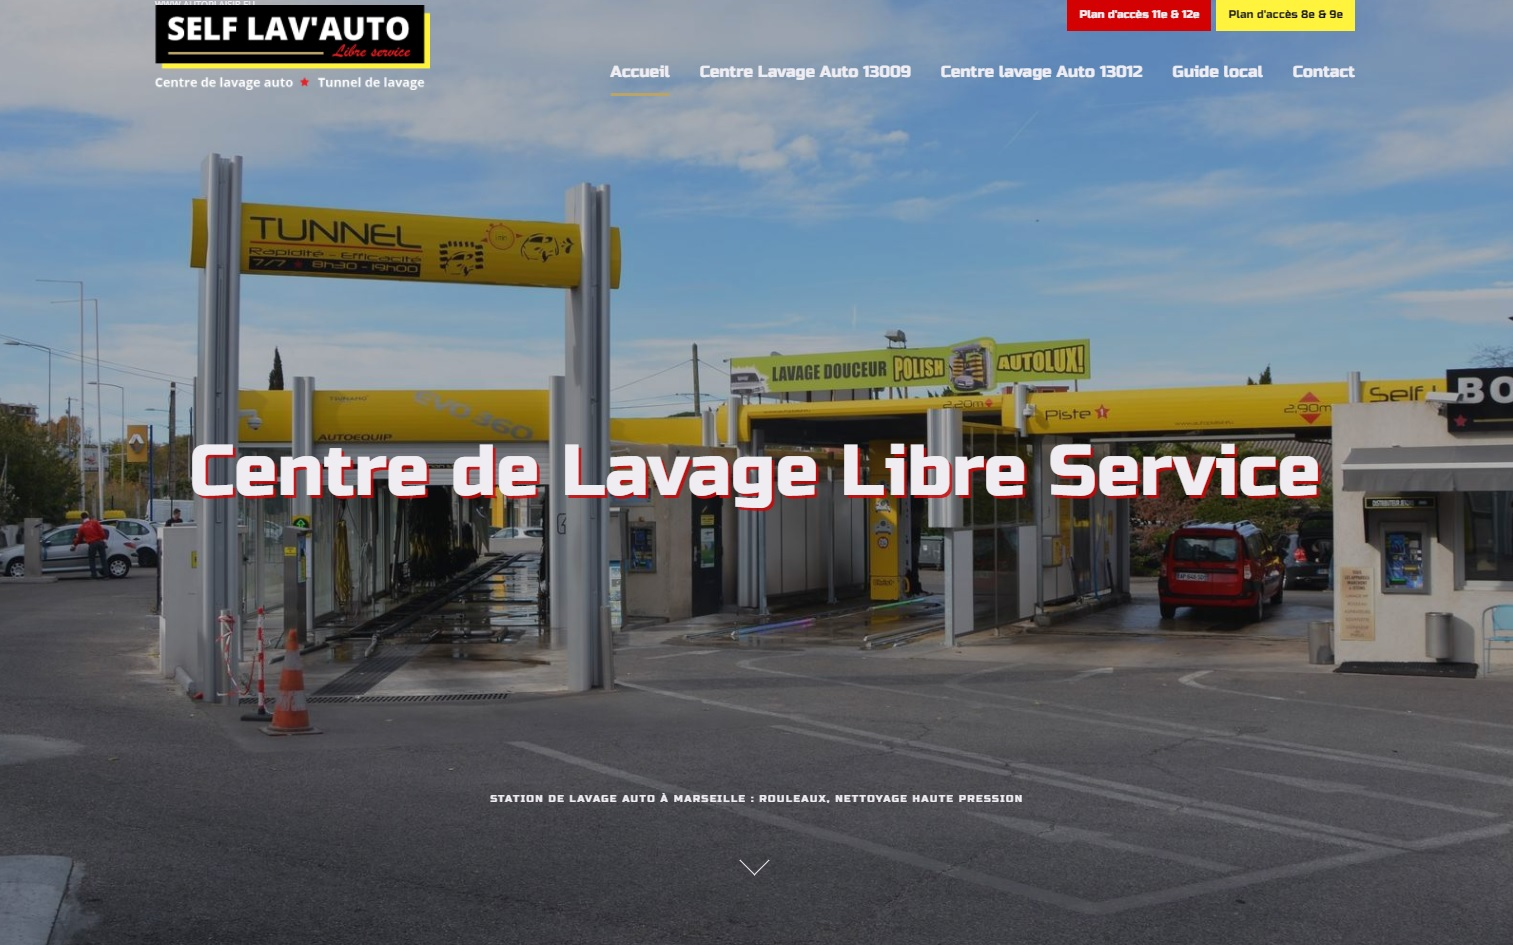 station de lavage auto en libre service marseille self lavauto site internet automobile jalis. Black Bedroom Furniture Sets. Home Design Ideas